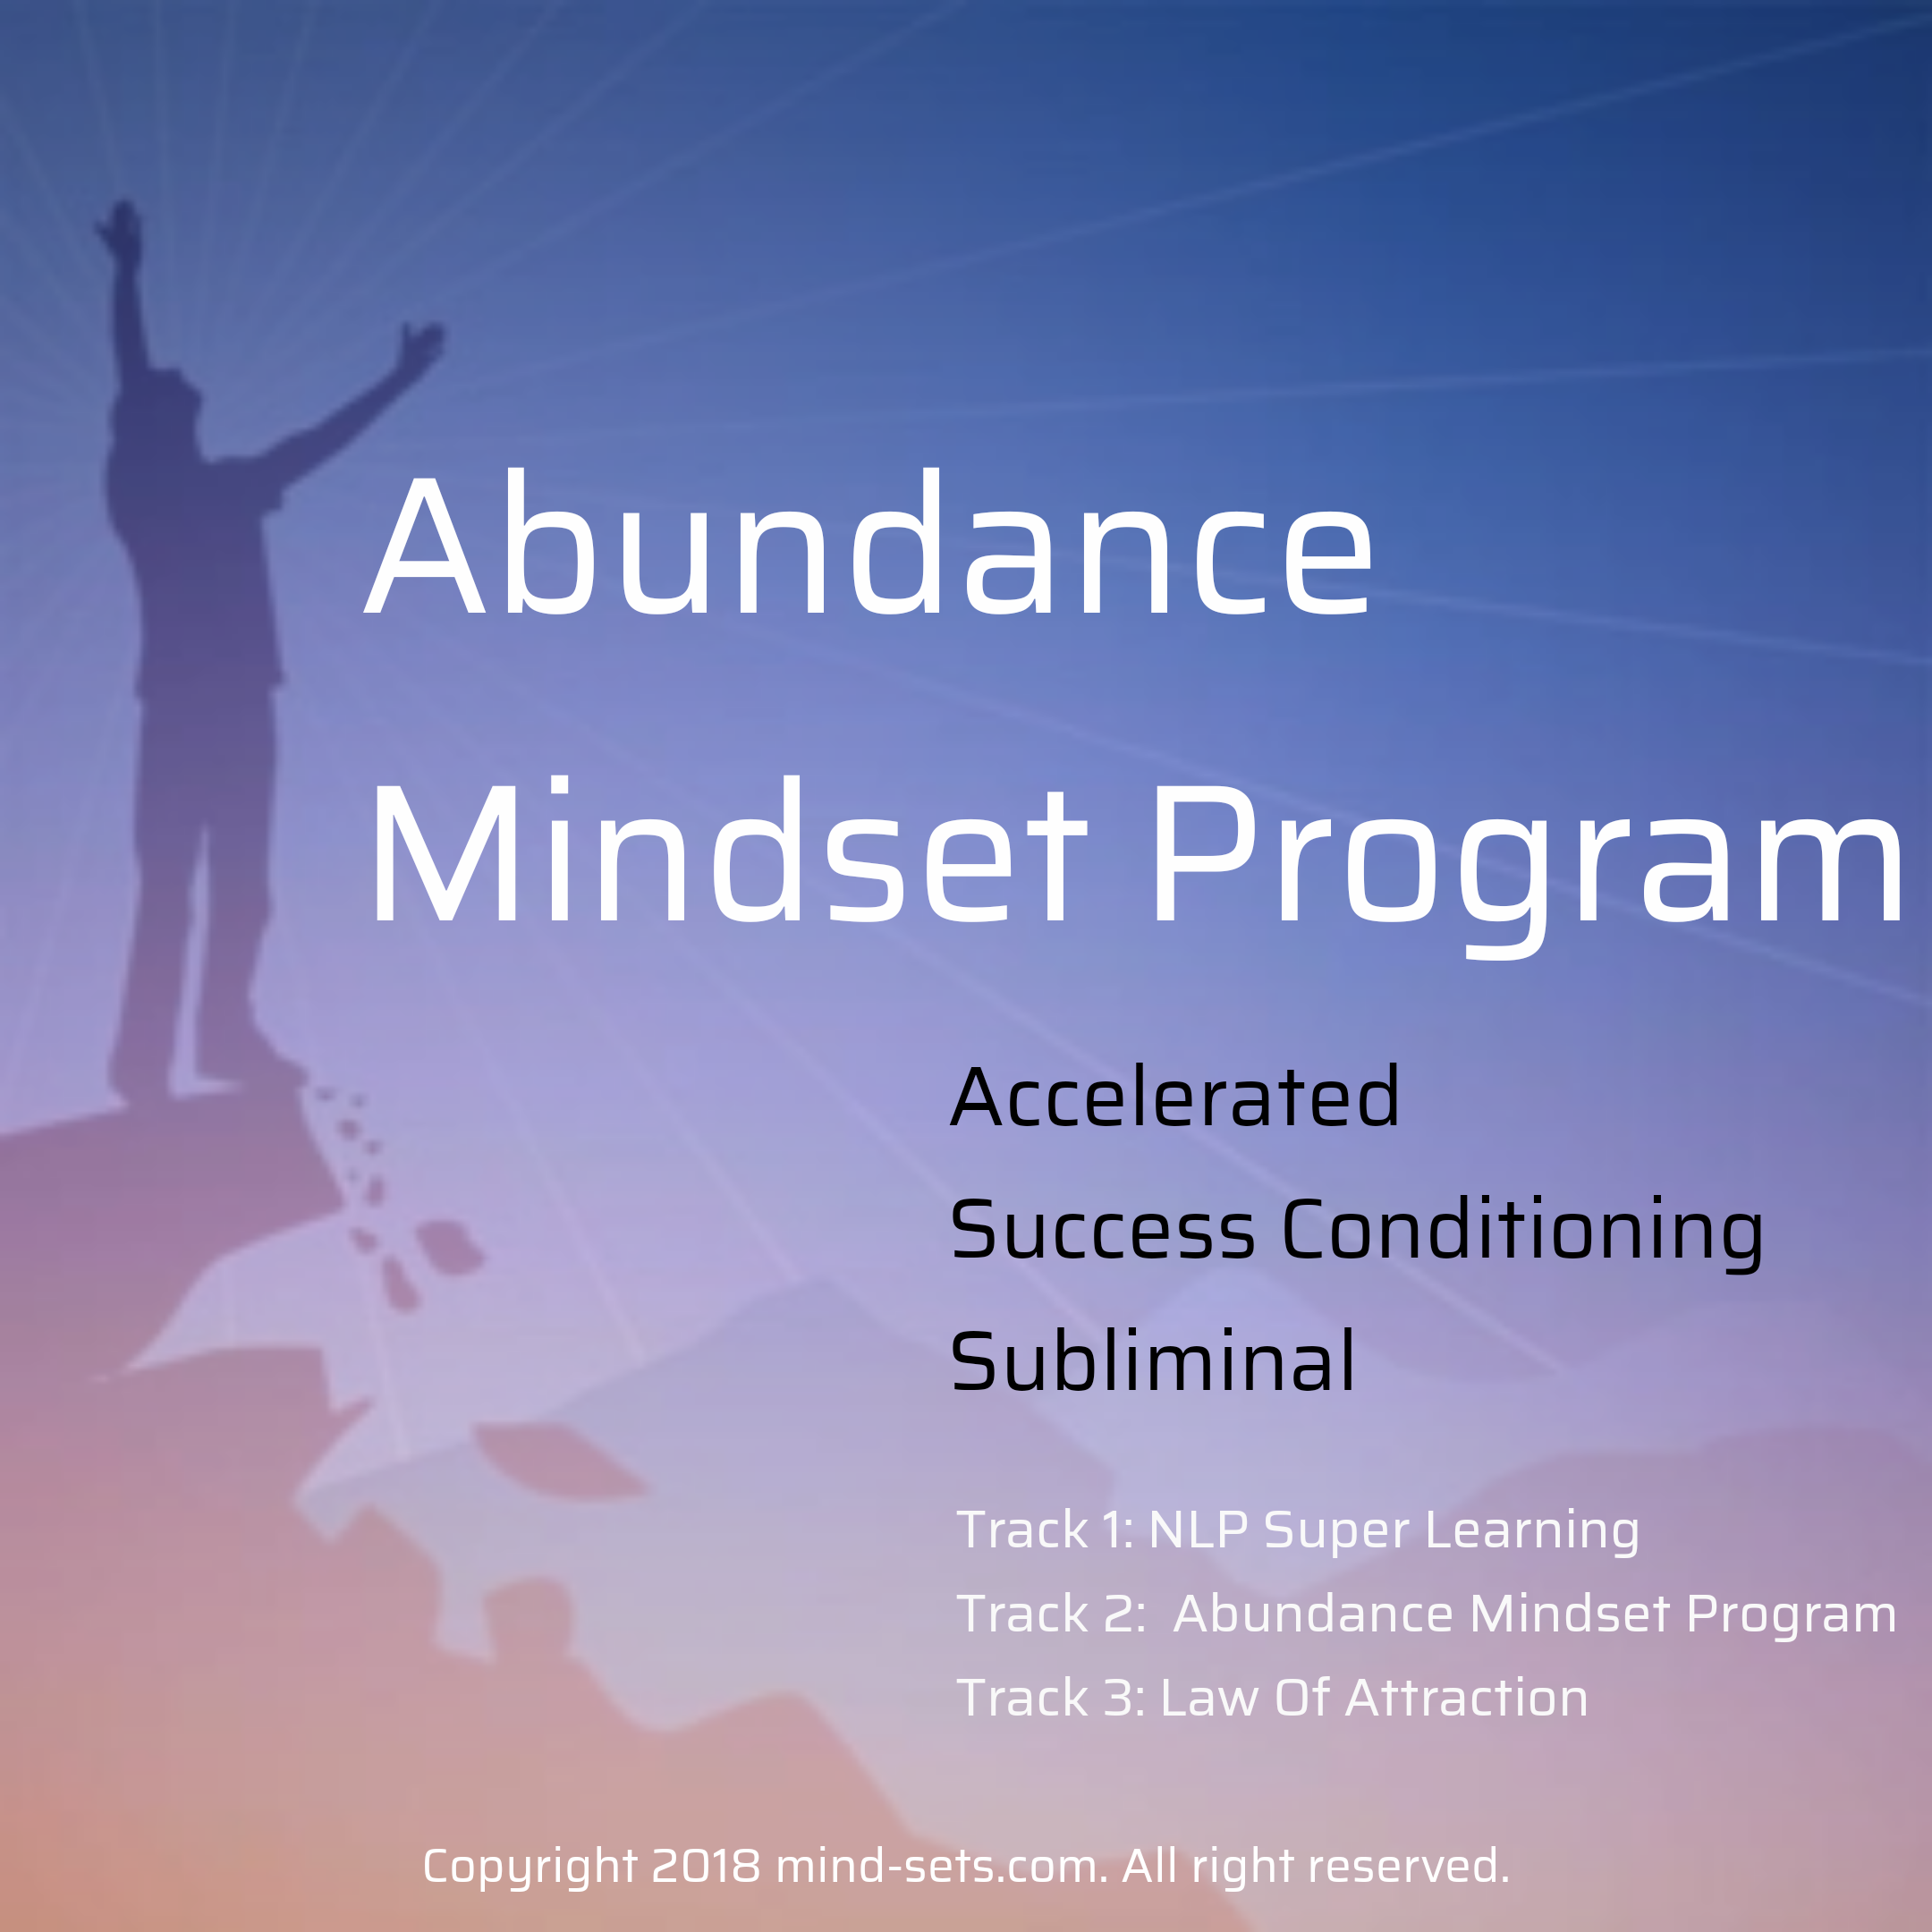 Abundance Mindset Program